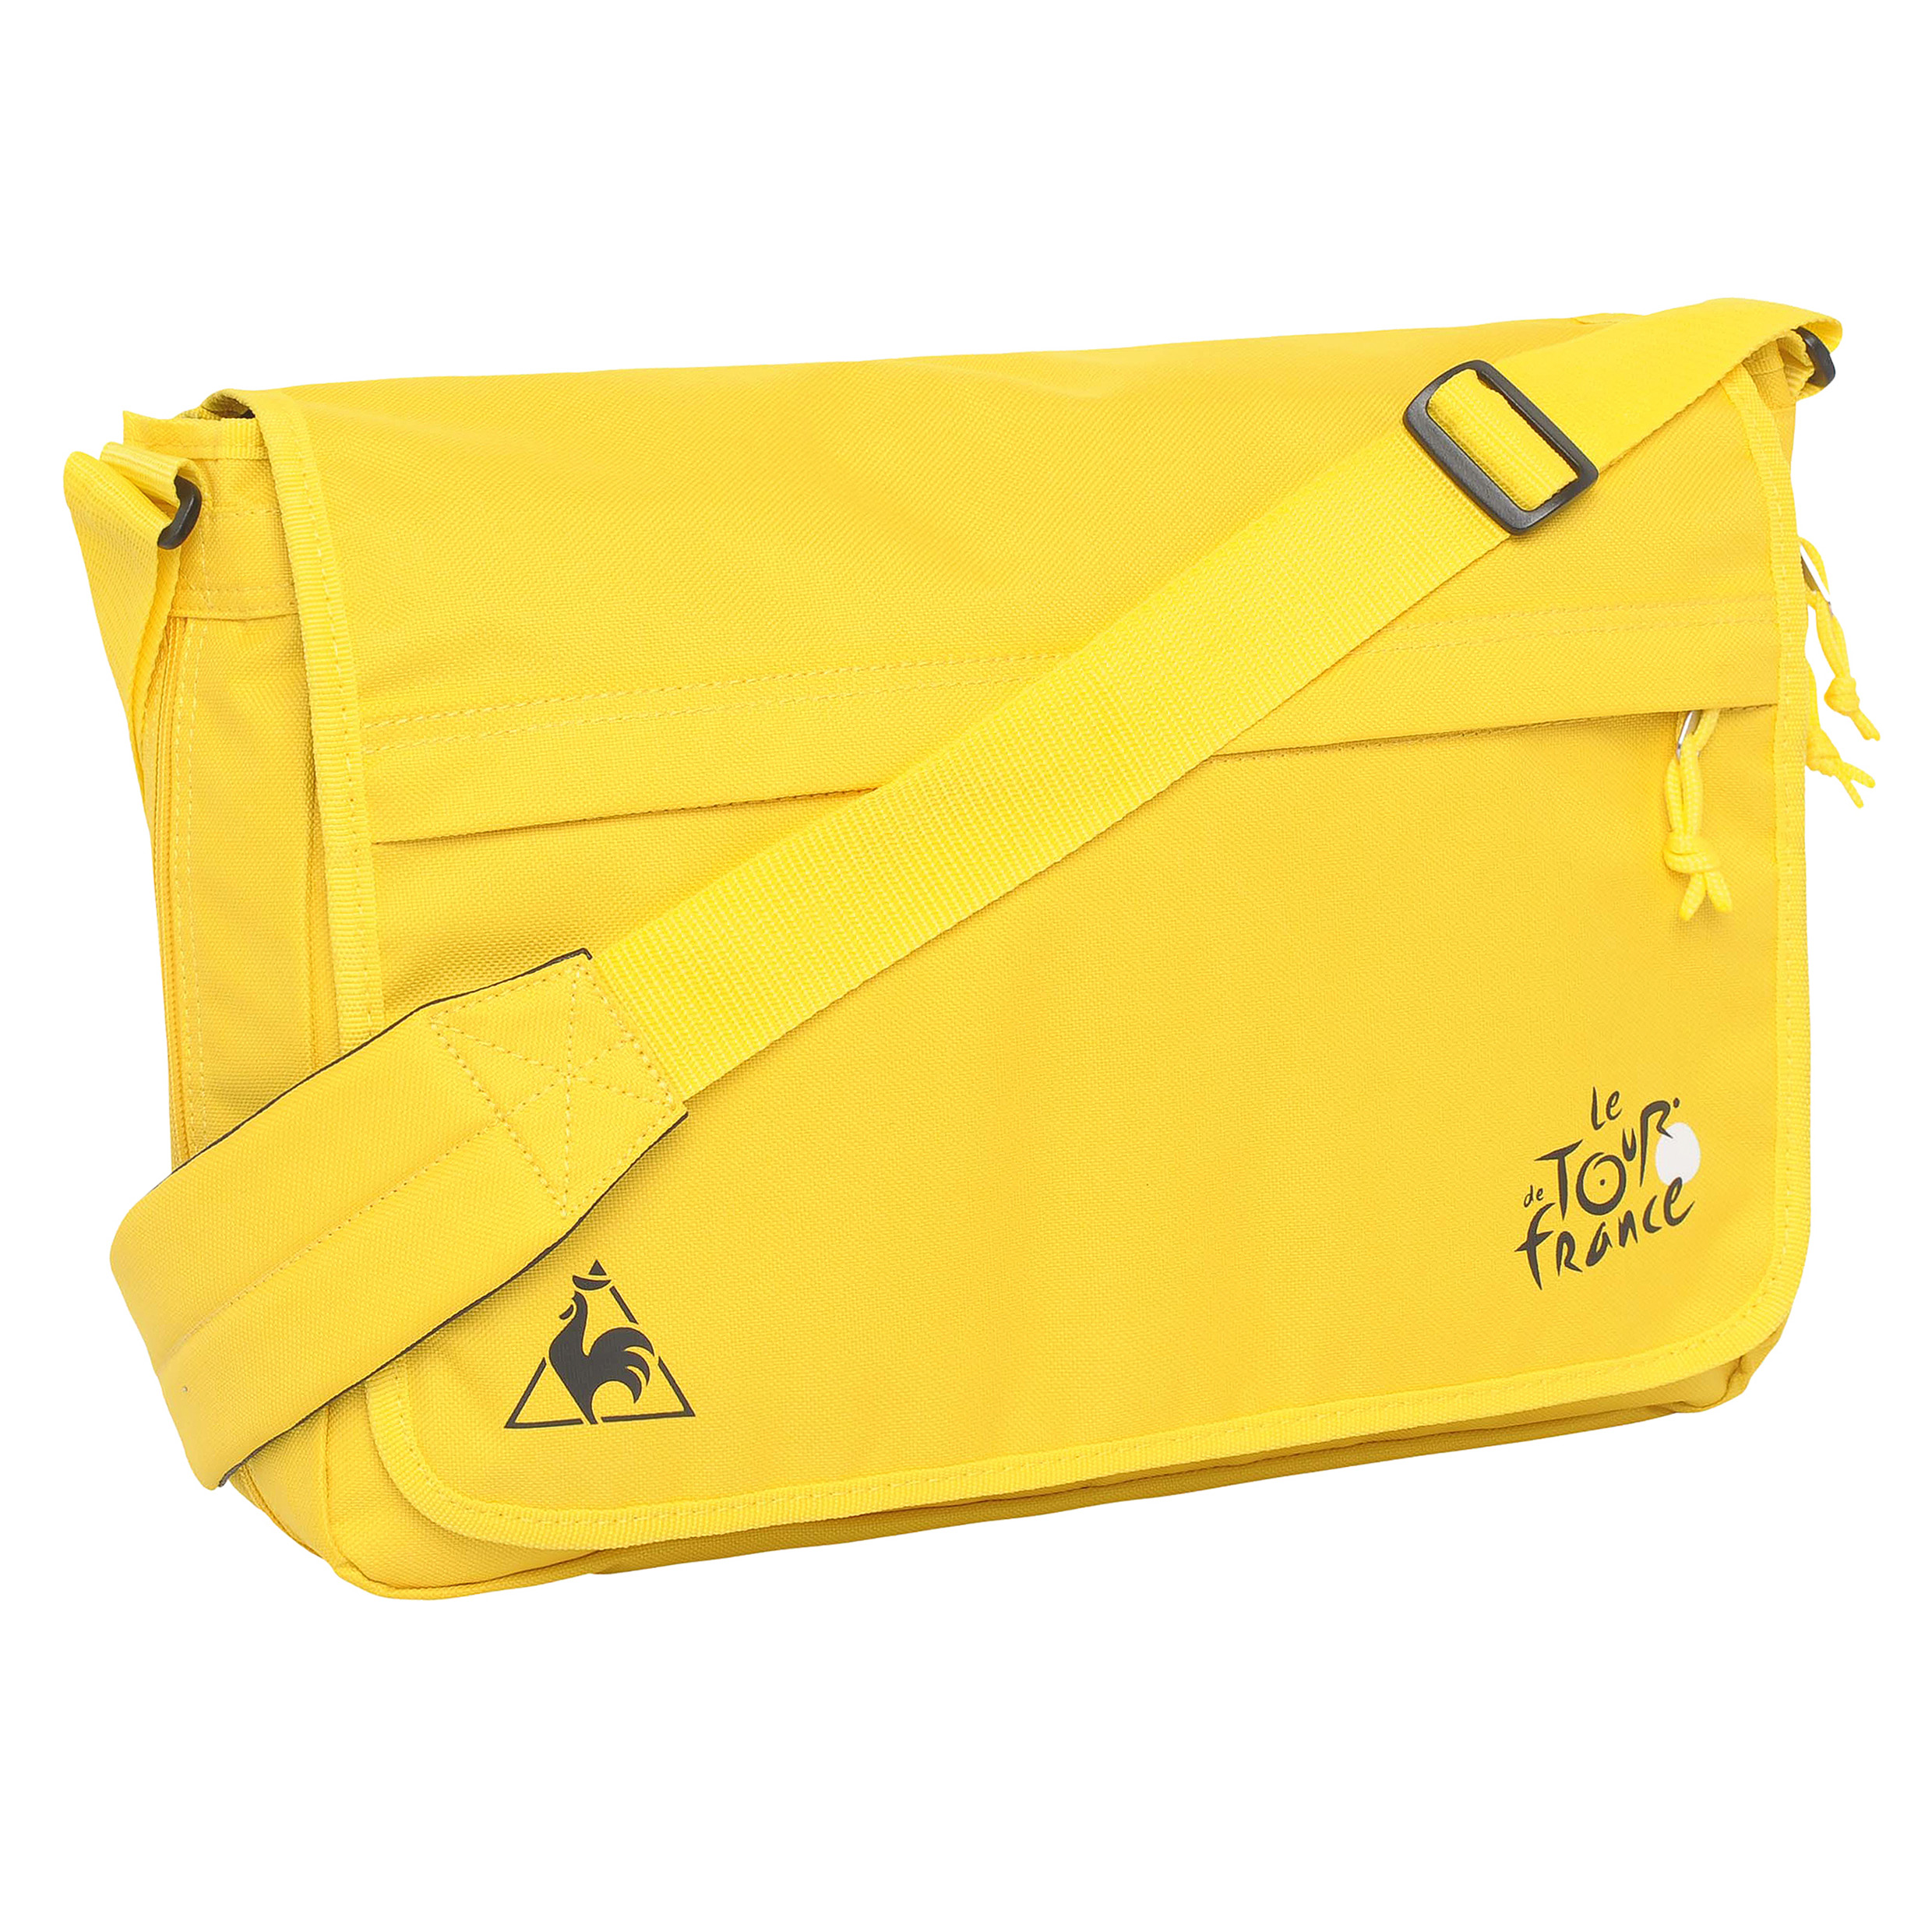 Le Tour de France Le Coq Sportif Messenger Bag - Primrose Yellow